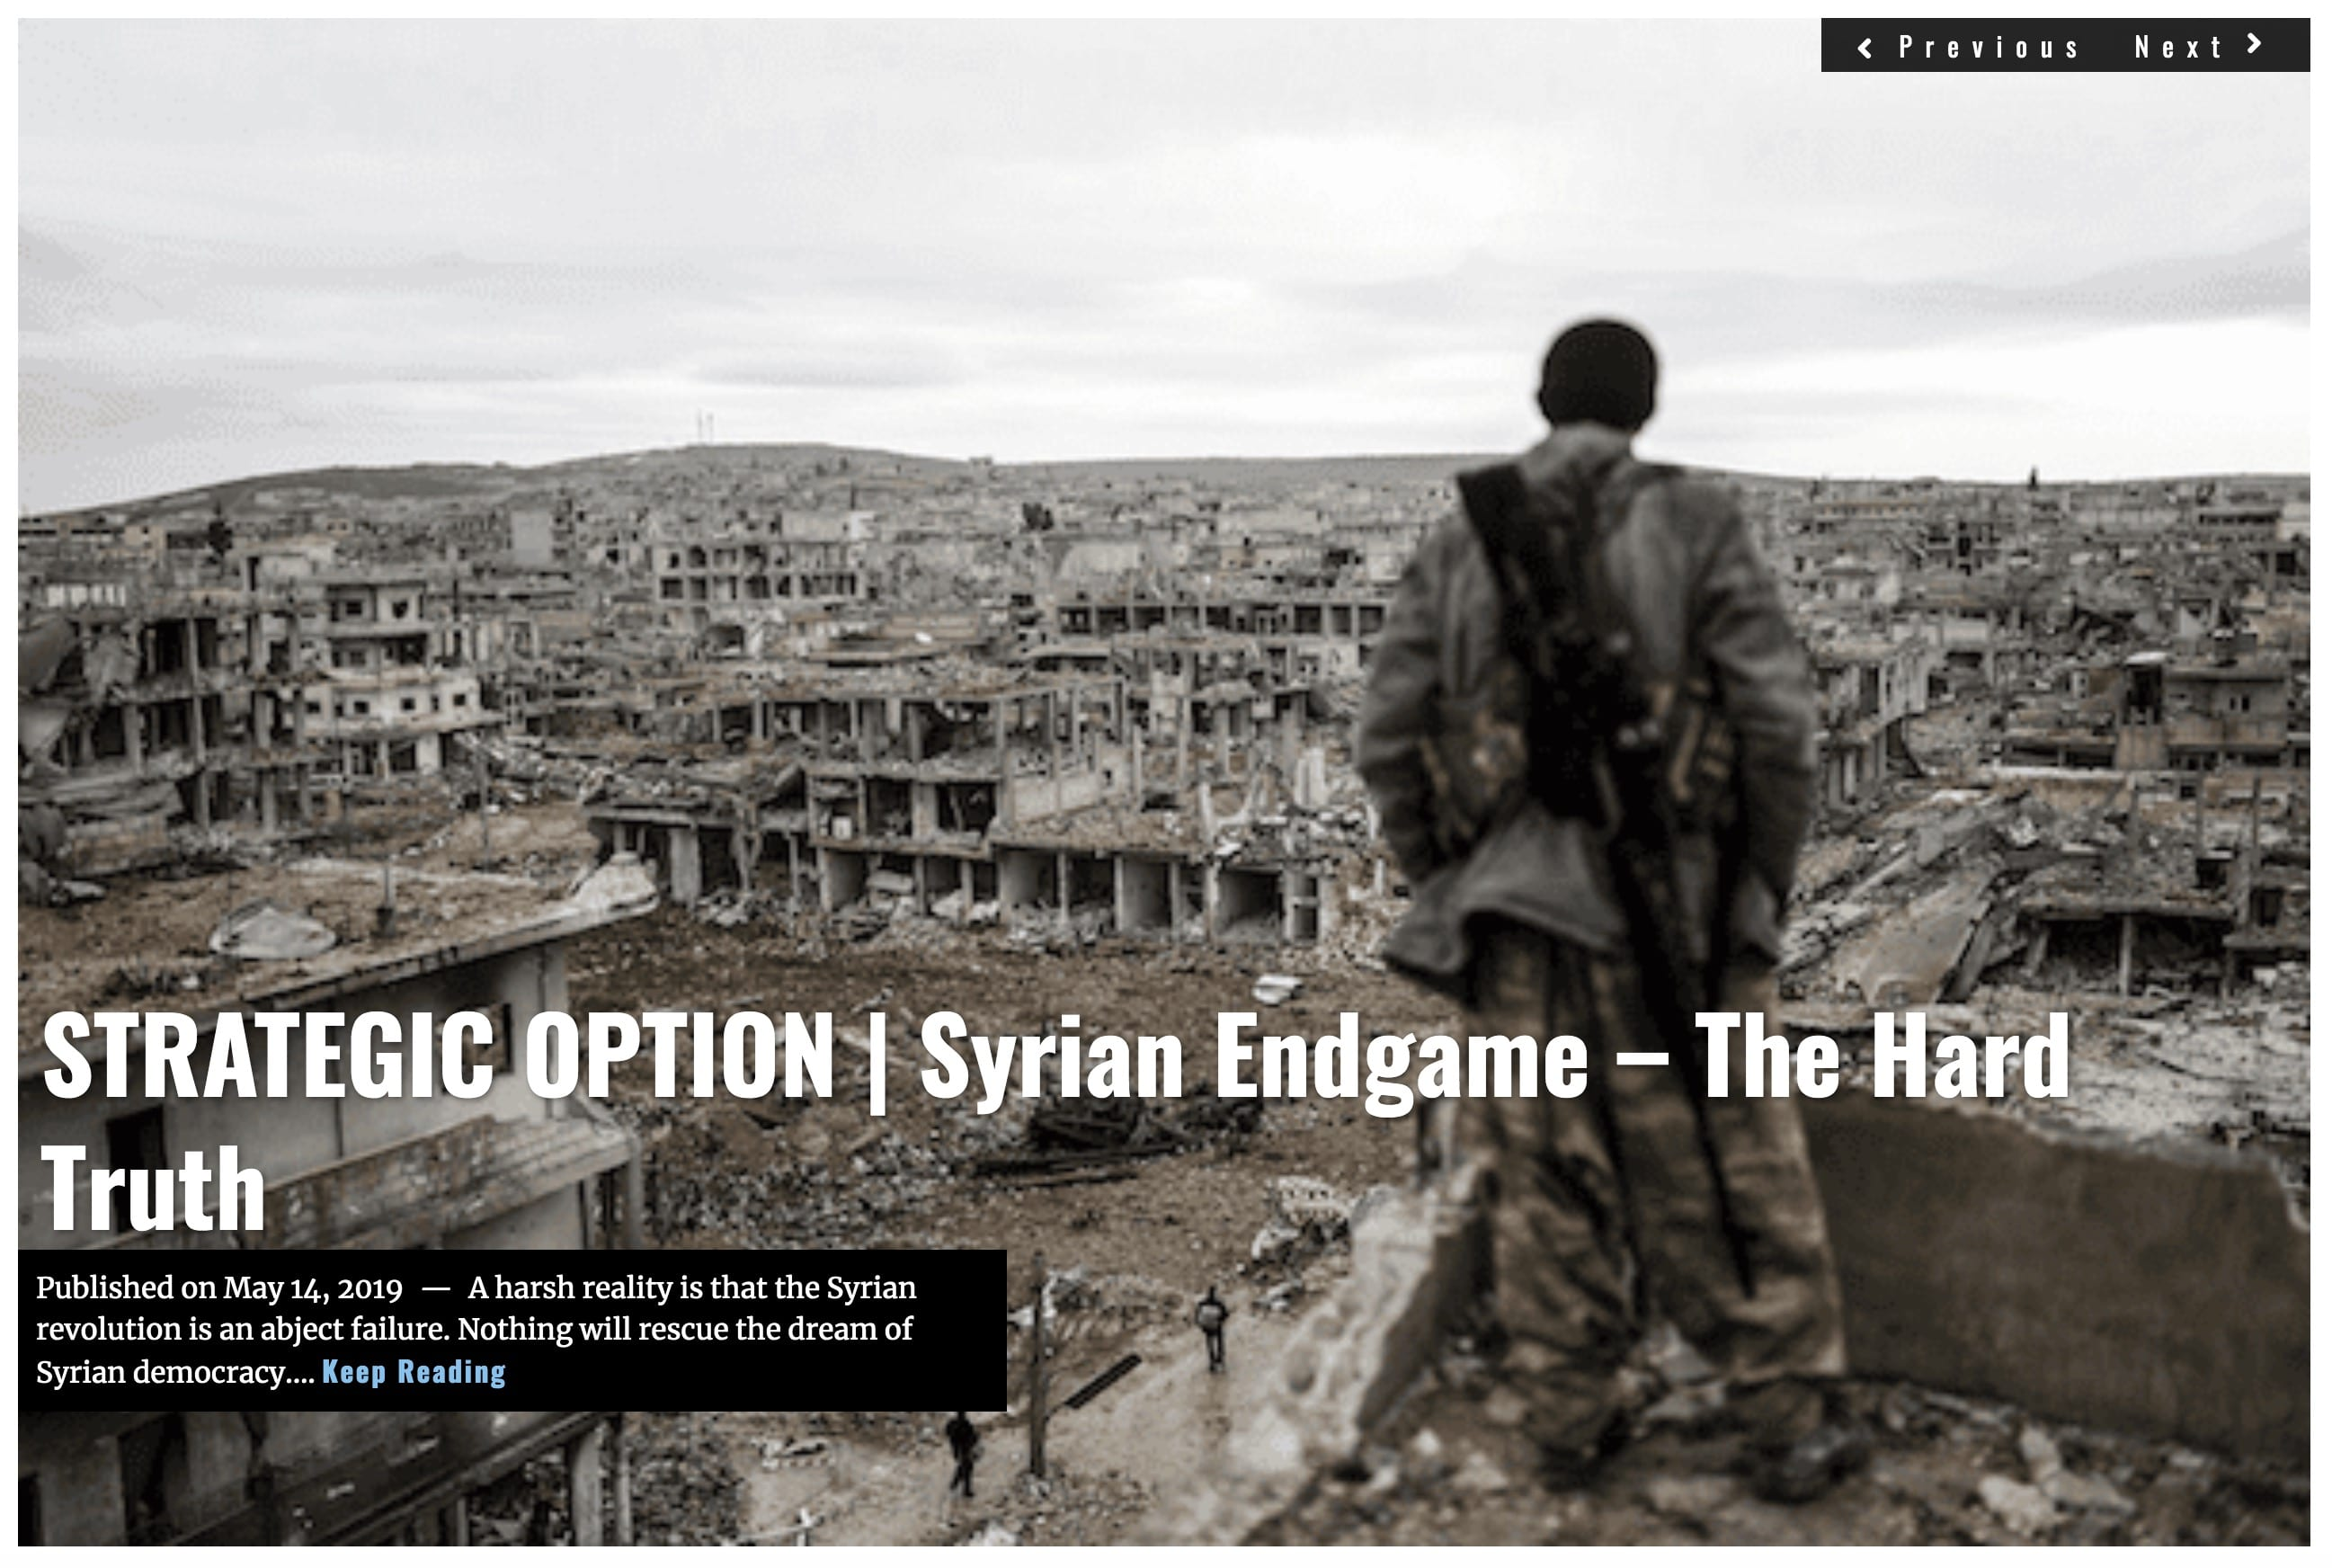 Lima Charlie News Headline STRATEGIC OPTION Syrian Endgame MAY 14 2019